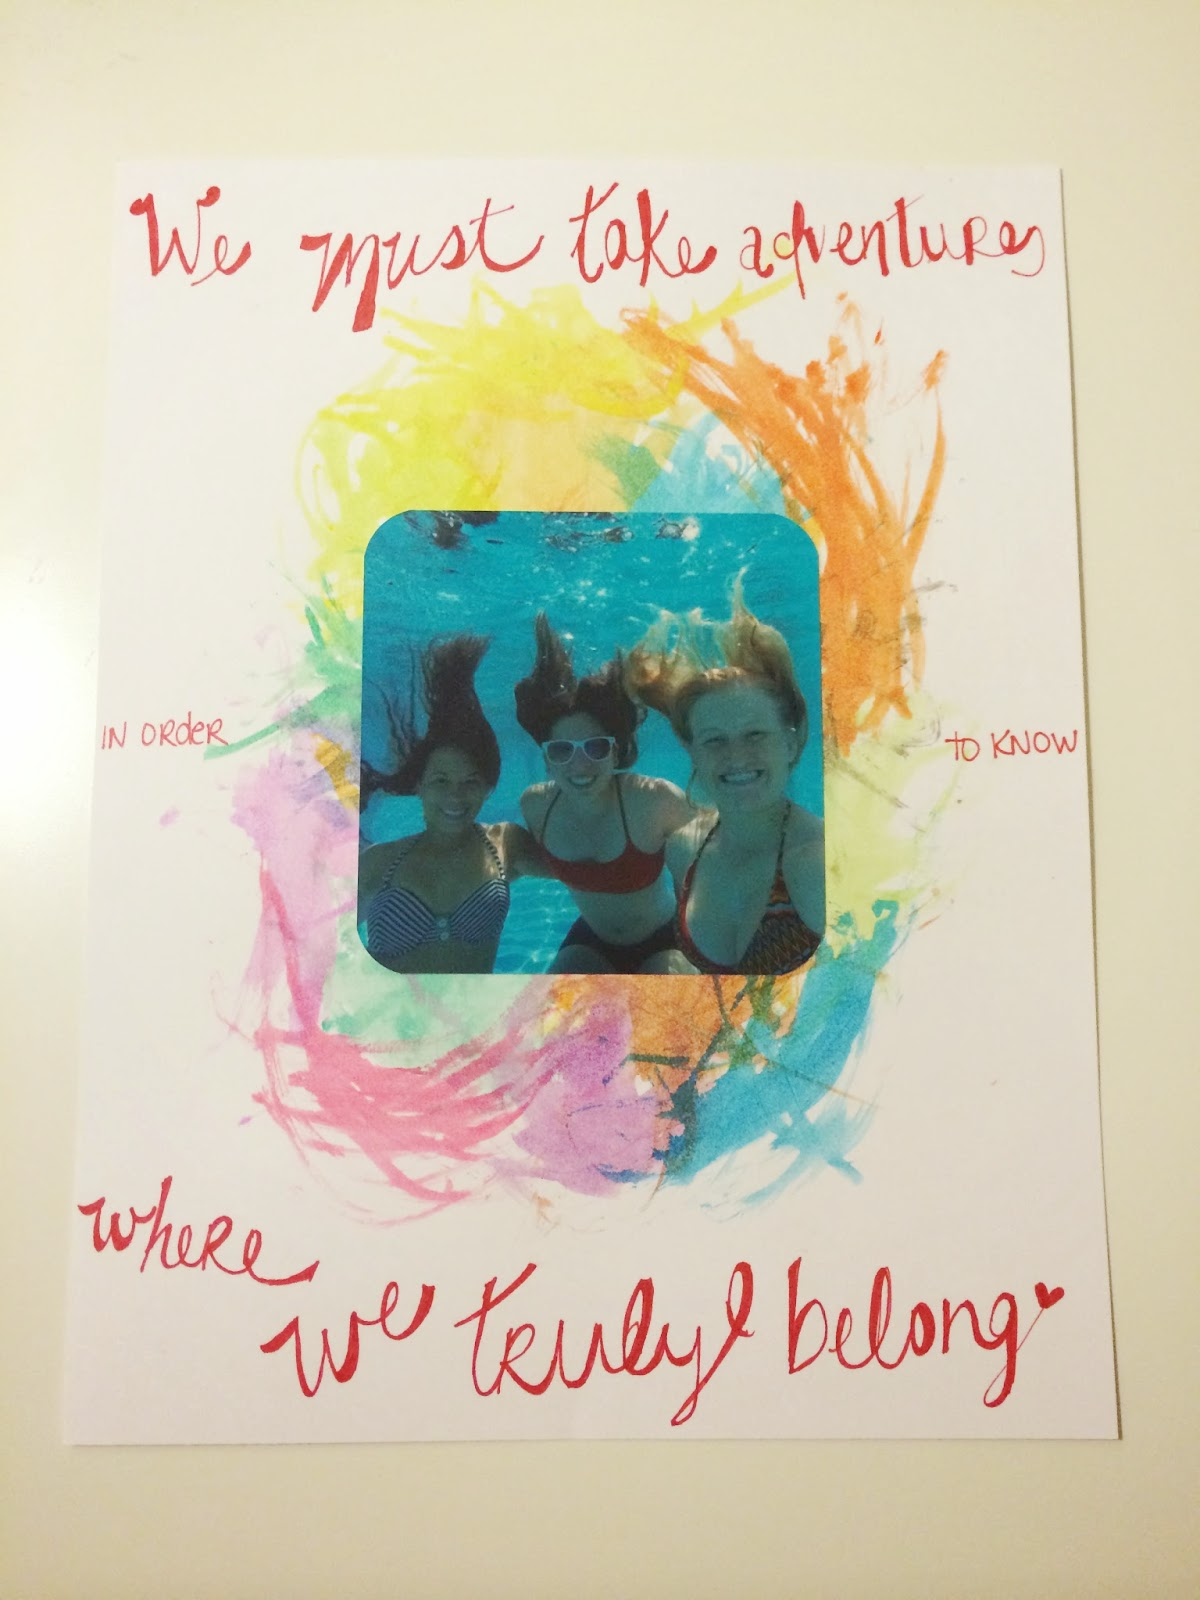 an underwater picture with a quote and watercolor